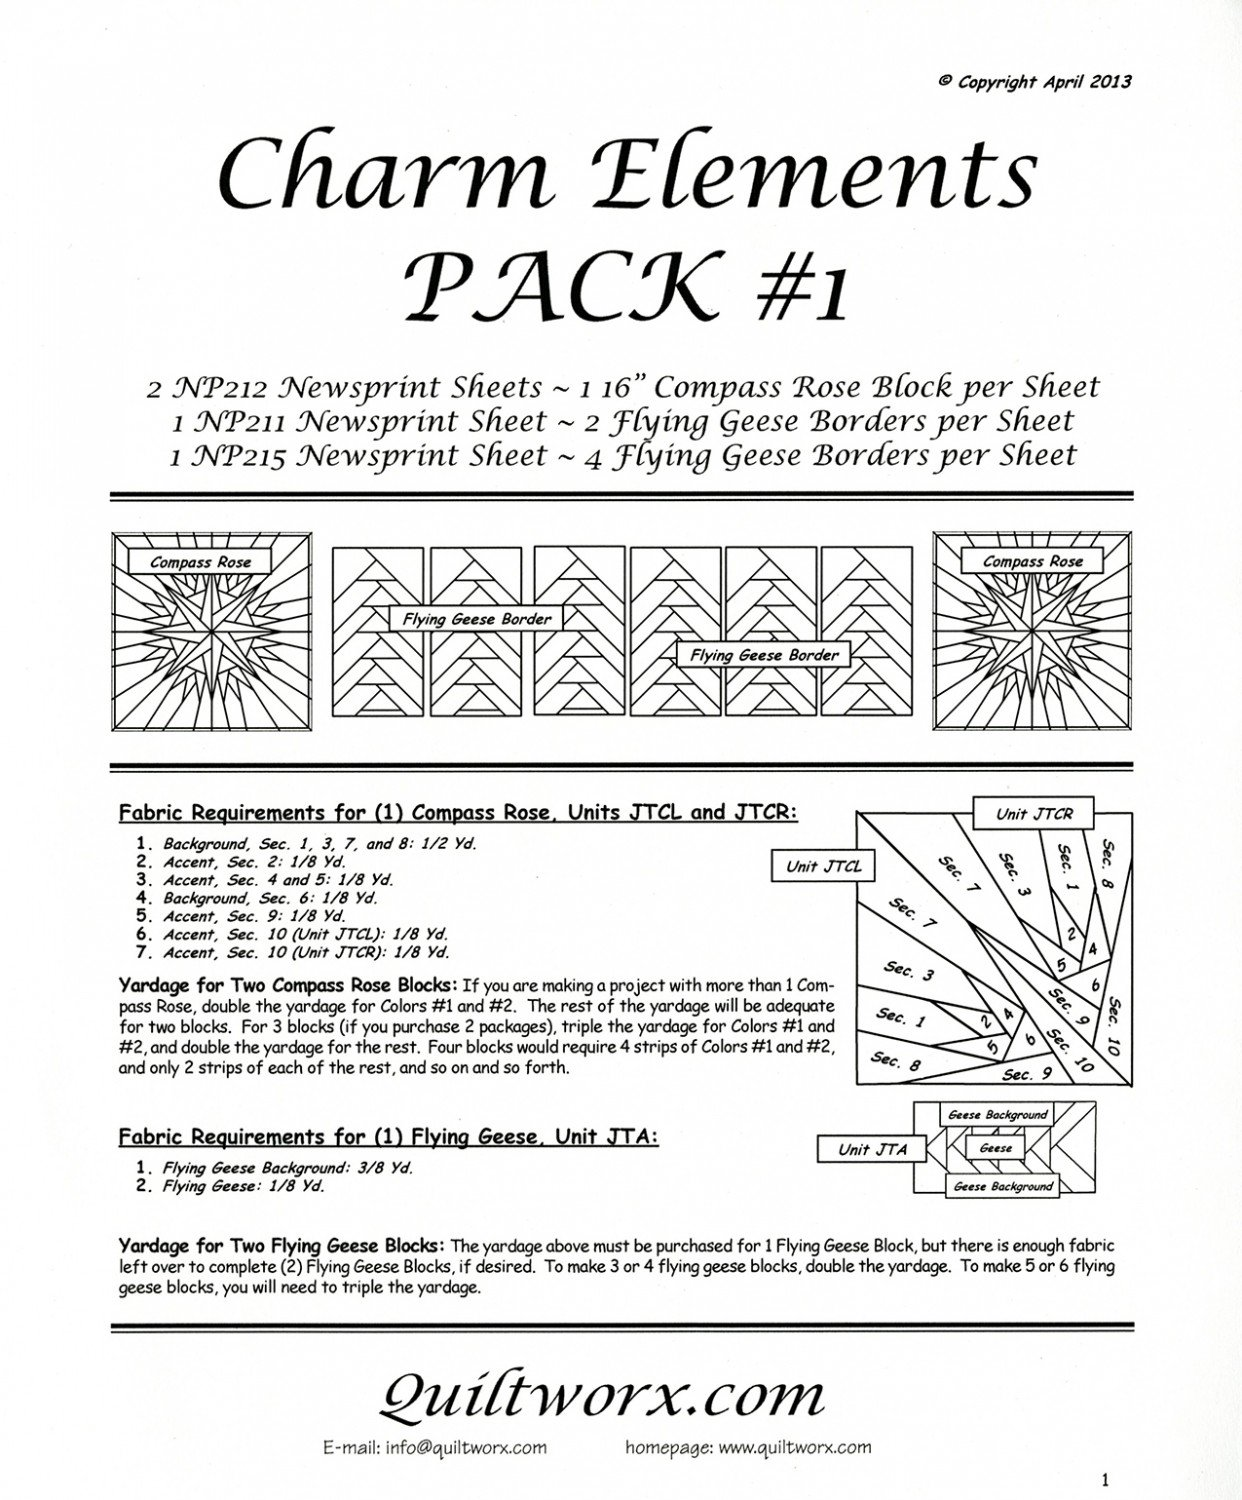 Charm Elements Pack #1